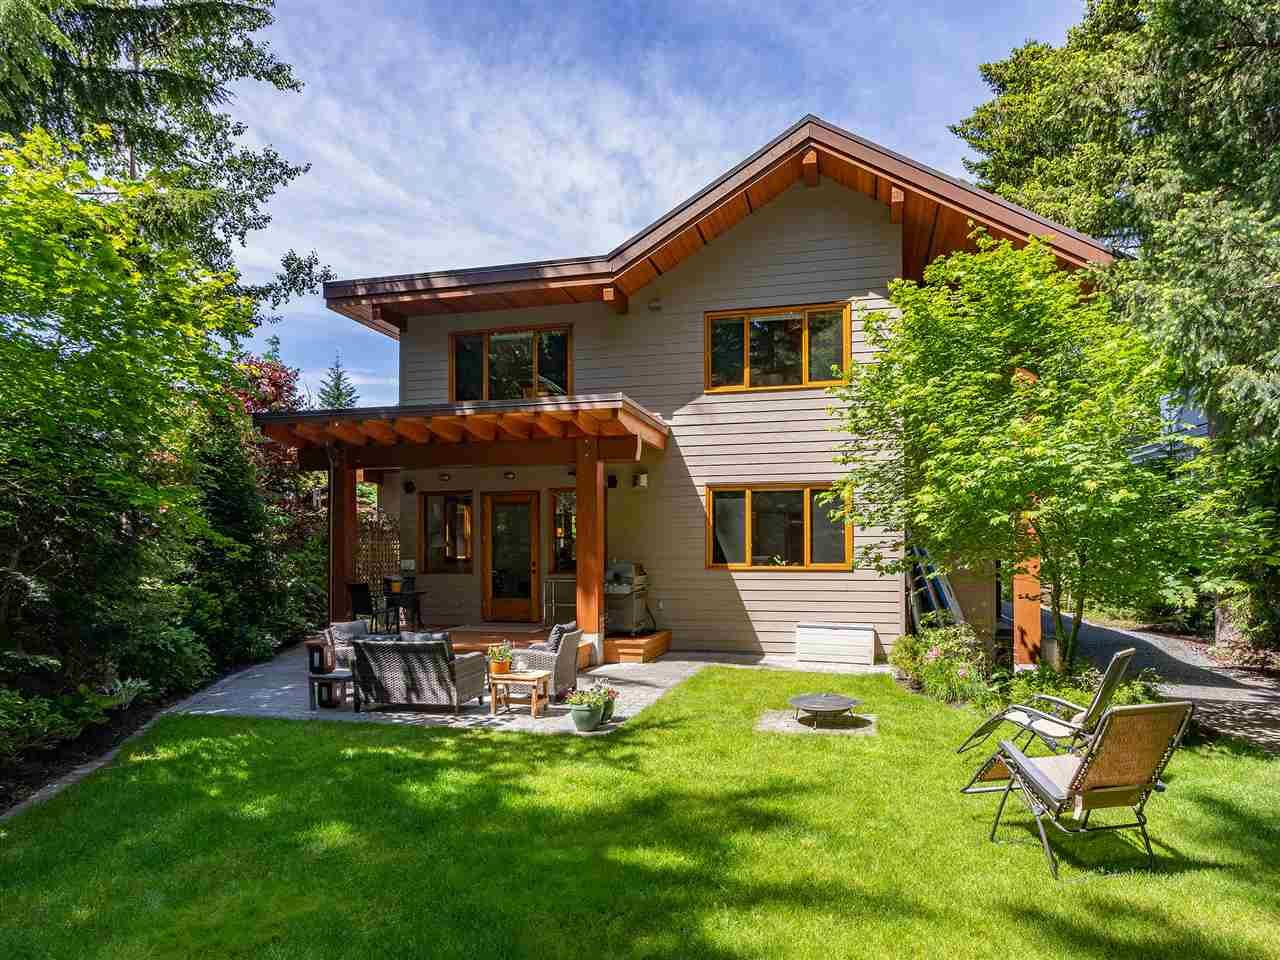 Photo 35: Photos: 3217 ARCHIBALD WAY in Whistler: Alta Vista House for sale : MLS®# R2468991